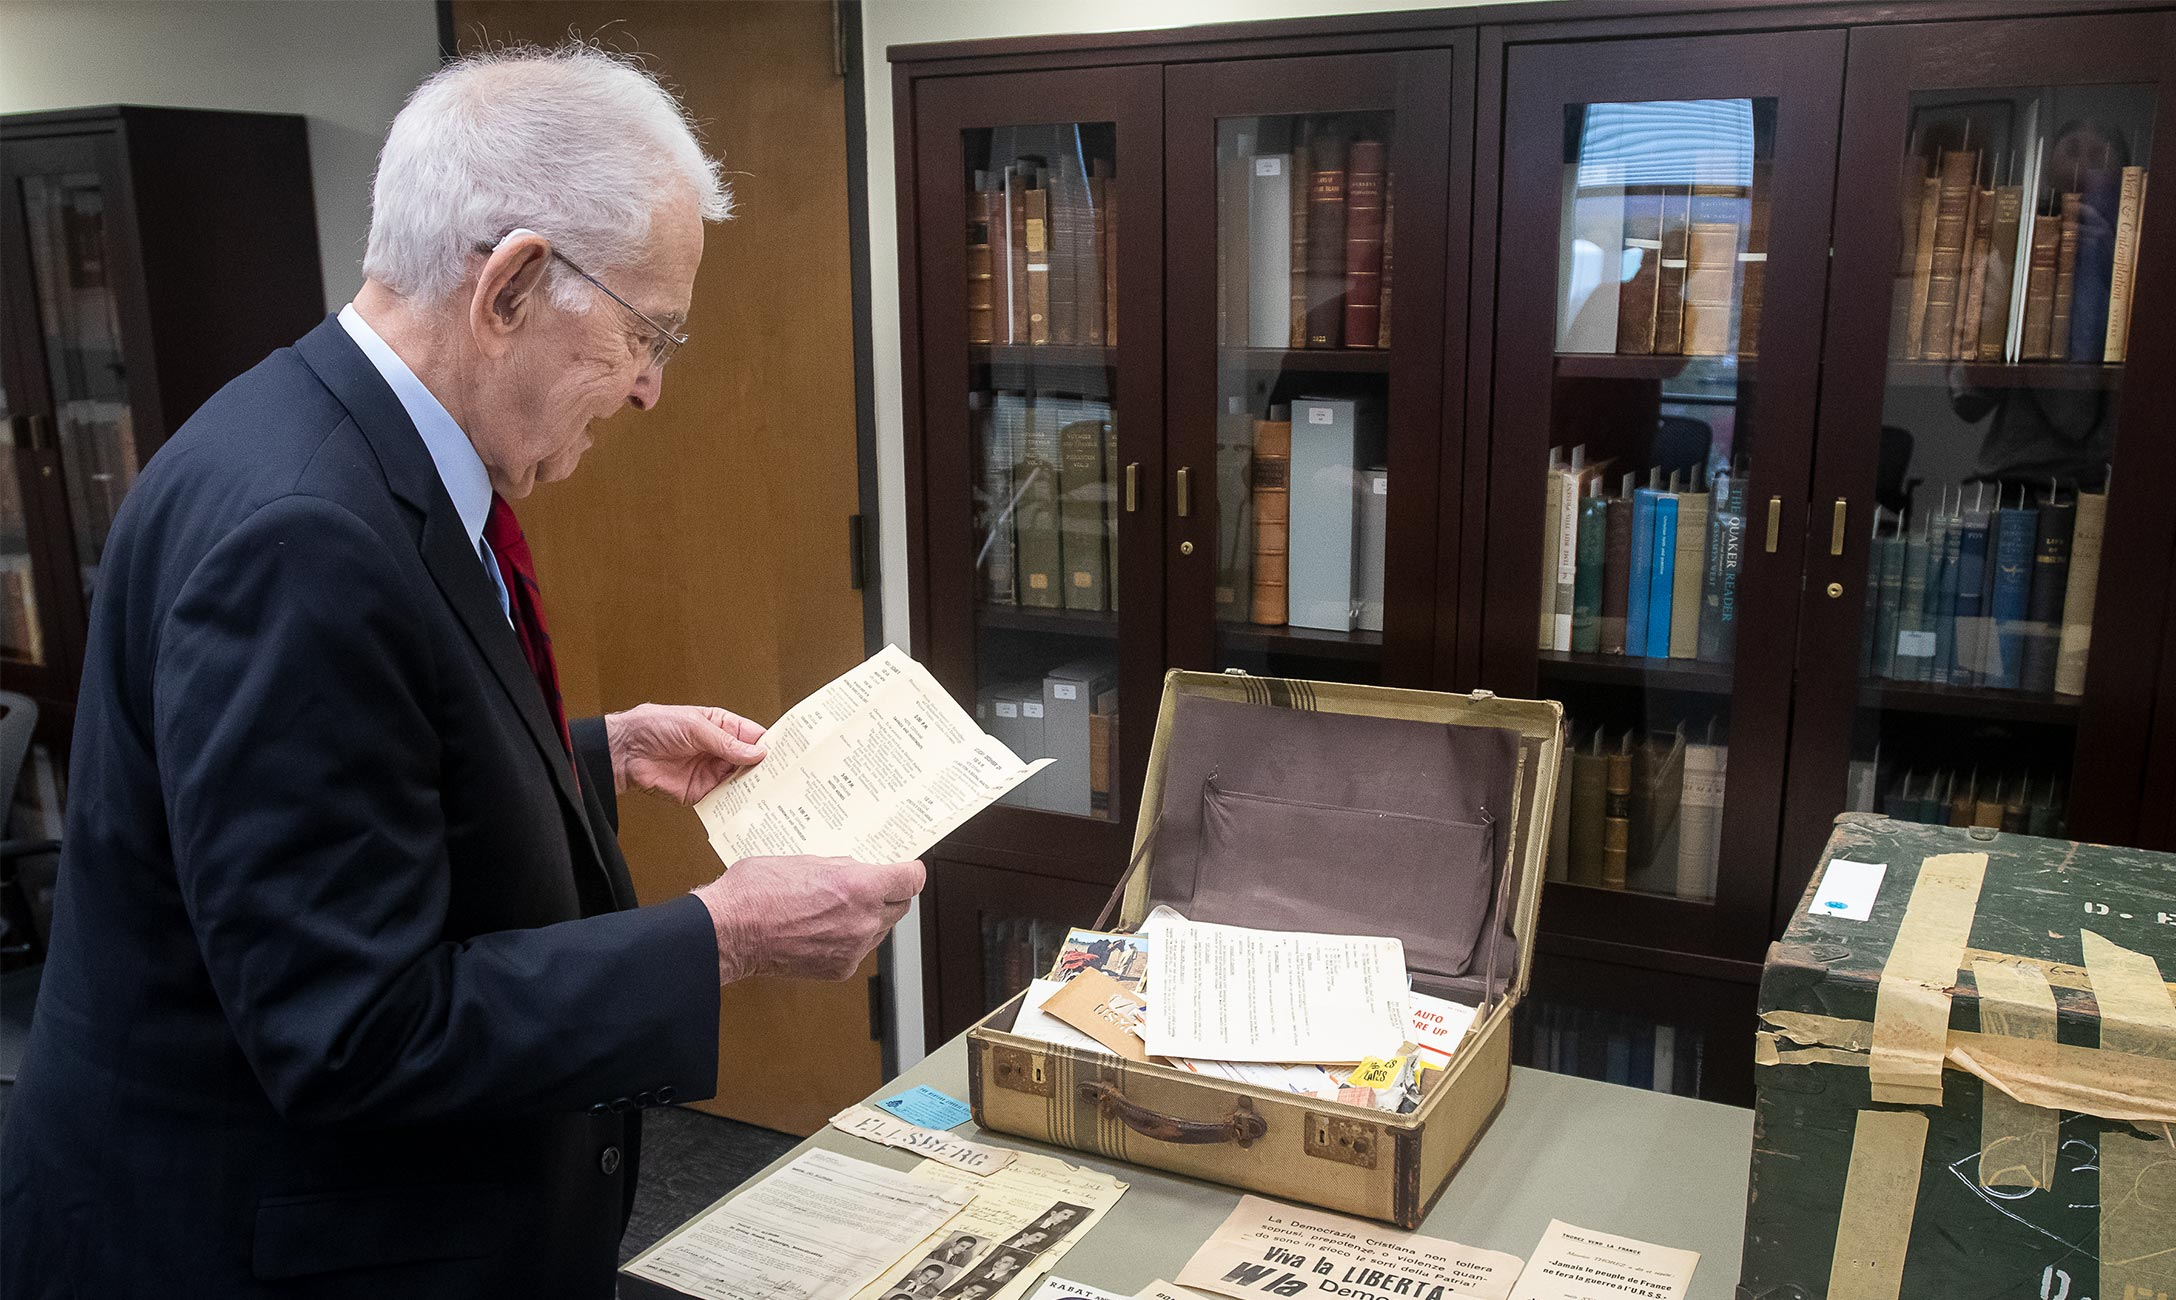 Ellsberg looks at some items that are part of his archive